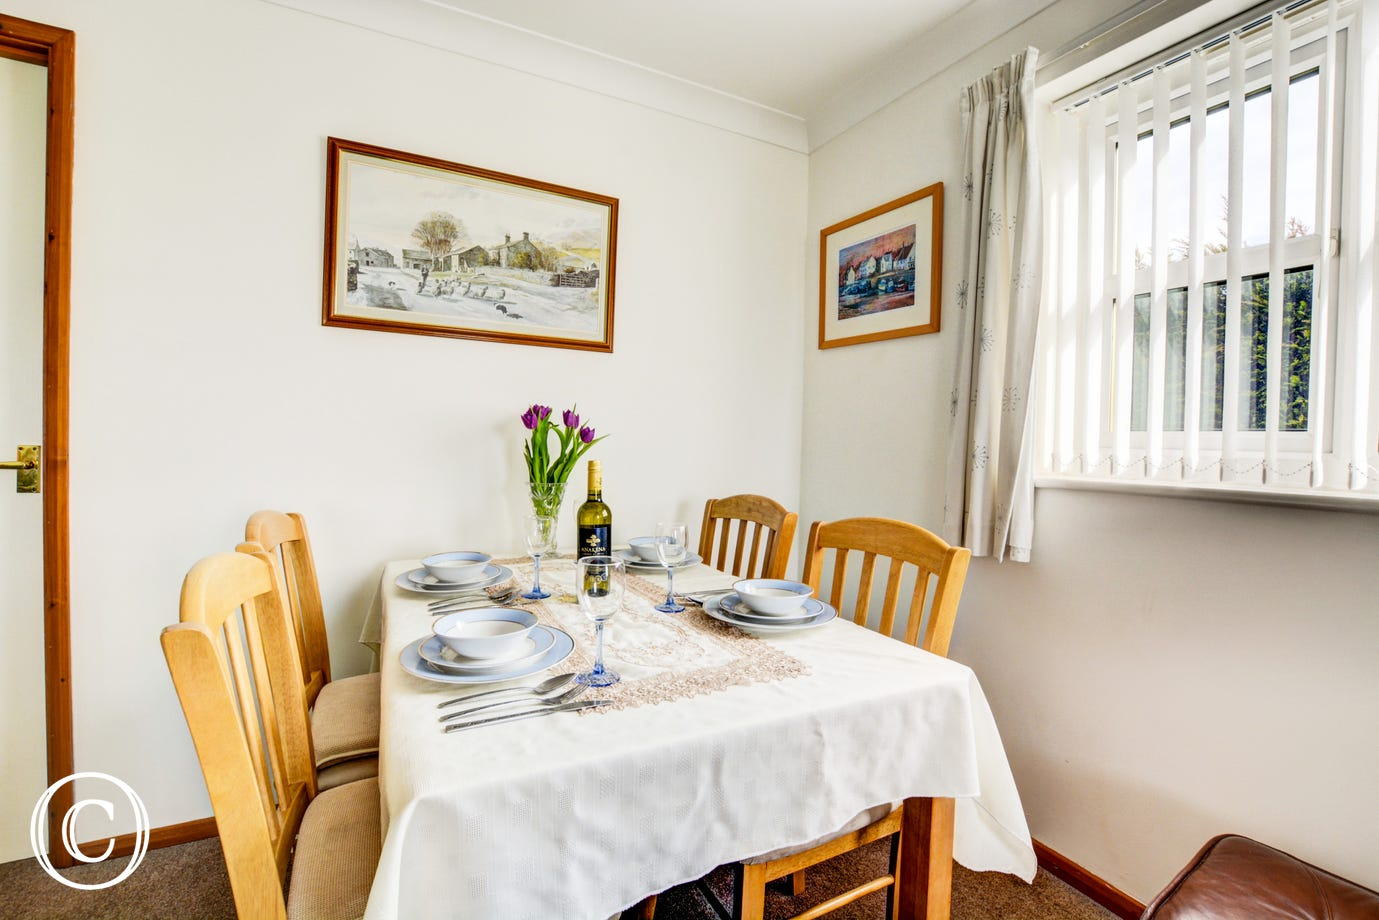 The convenient dining area within the sitting room